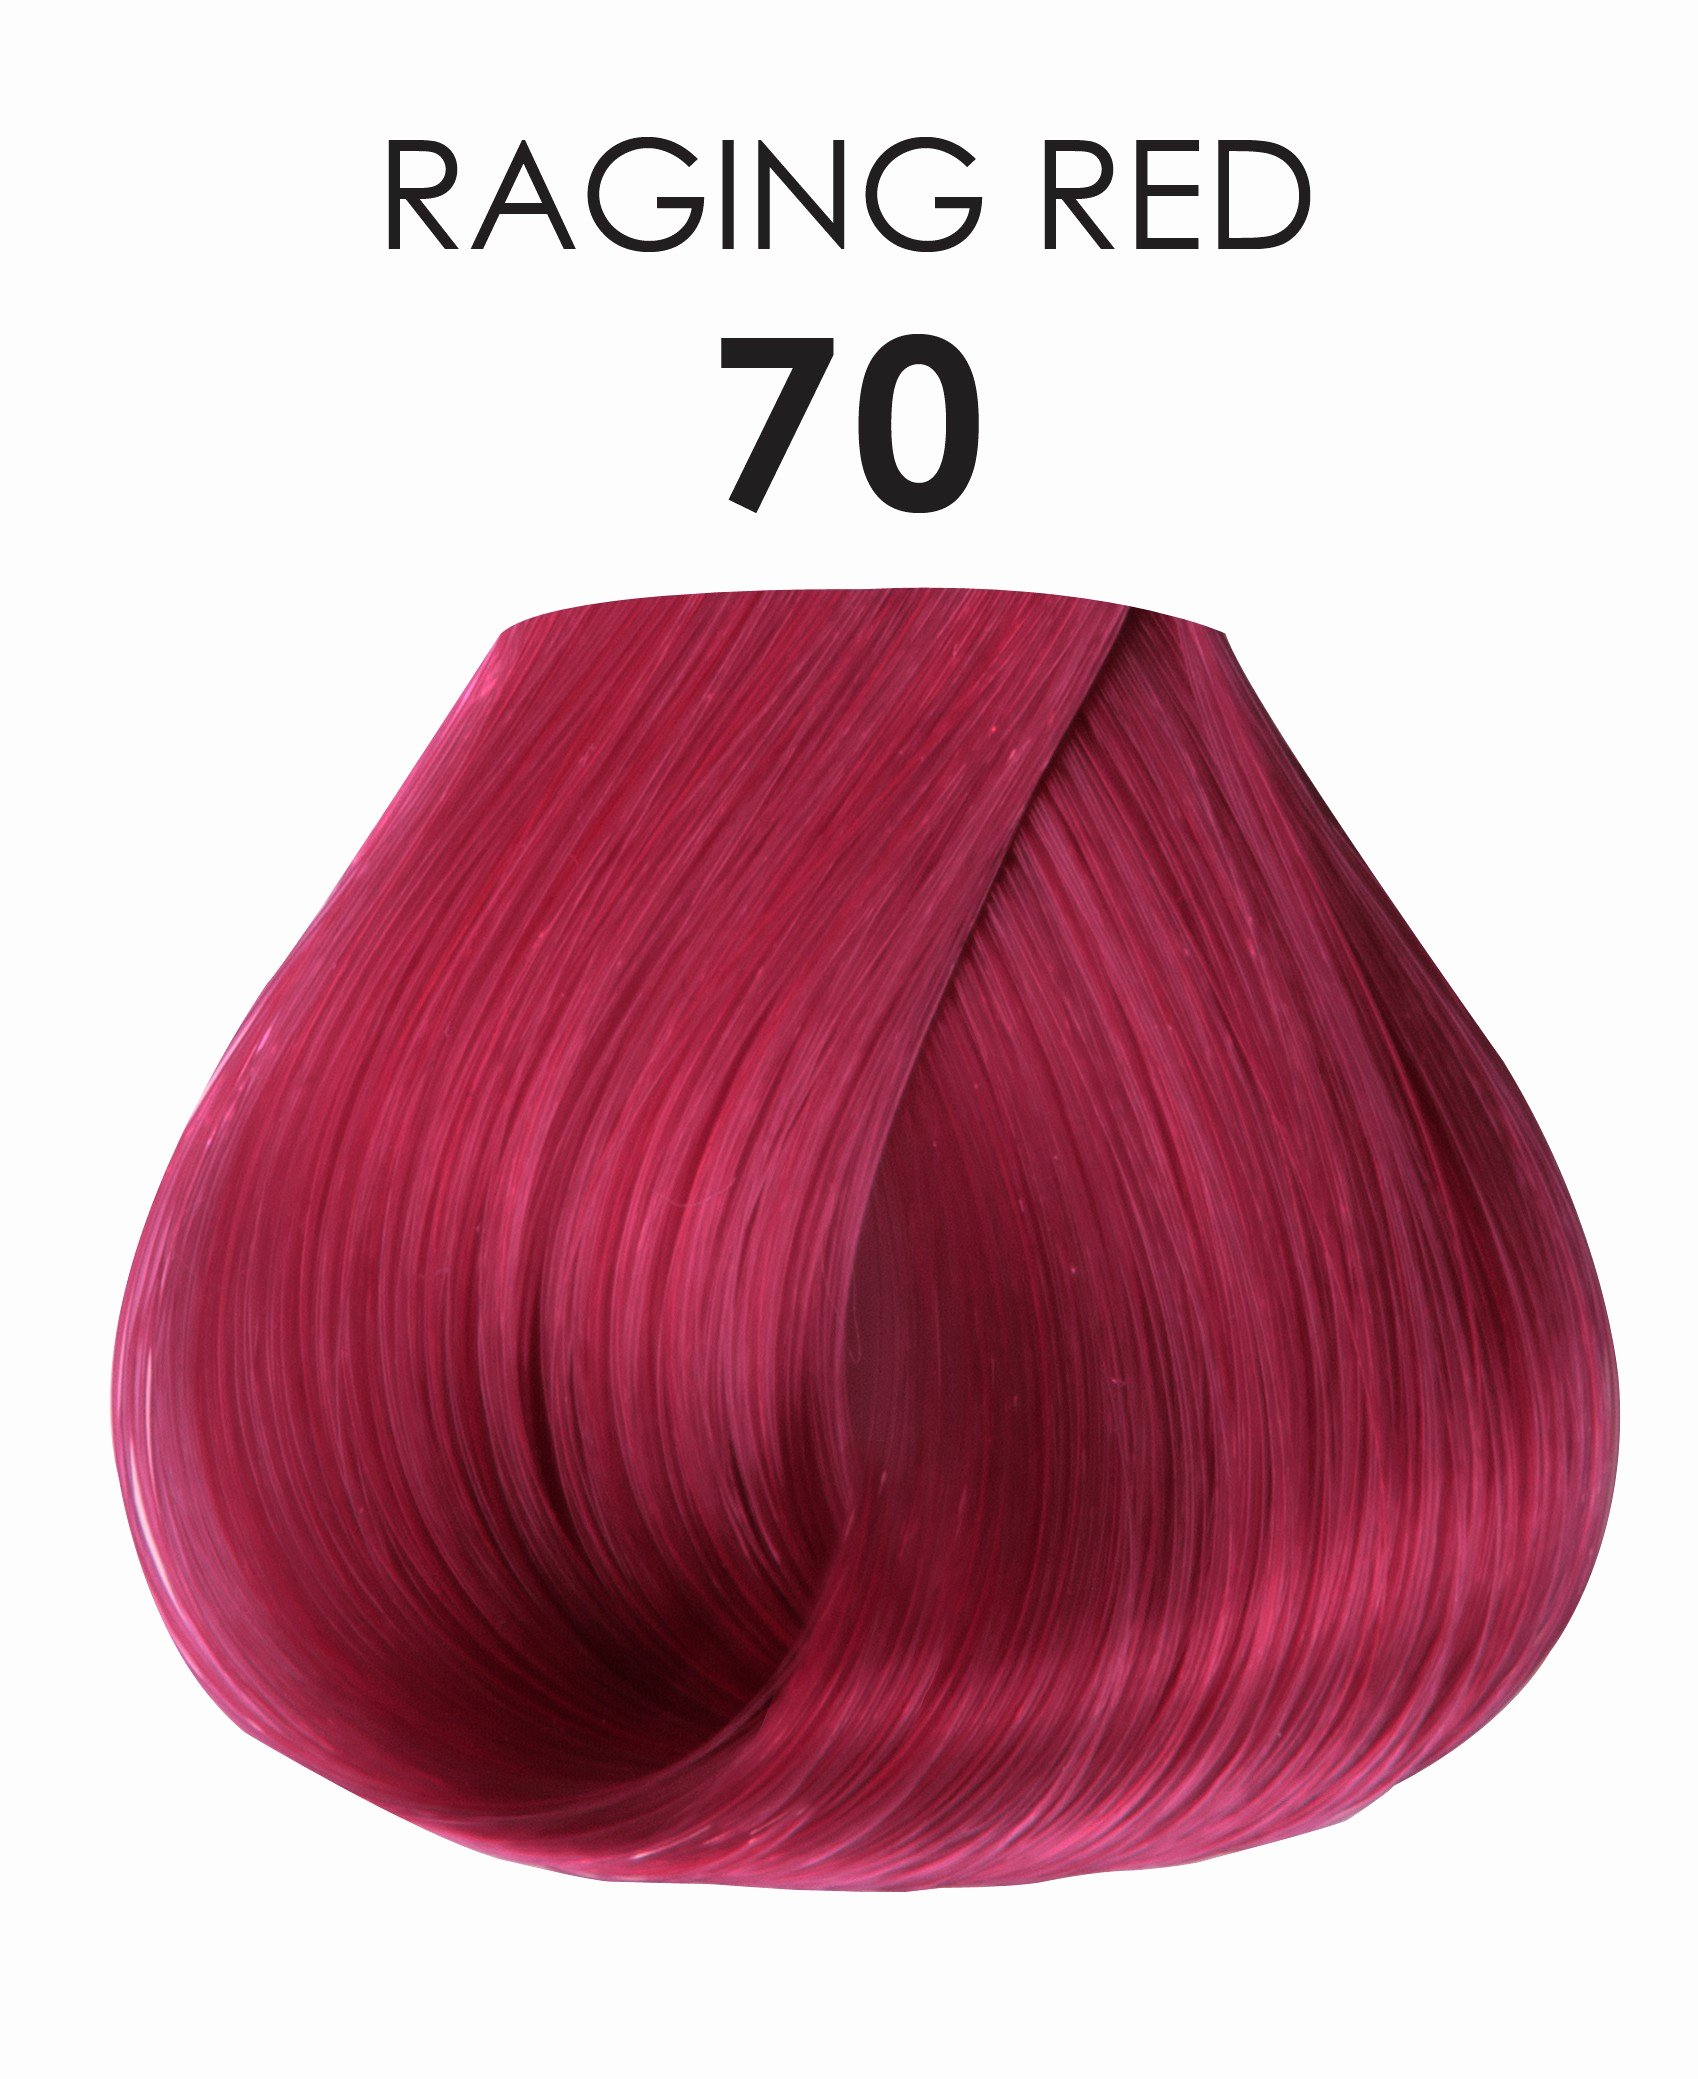 Adore Color Swatches Best Of Ci Adore S P Hair Color Raging Red wholesale Beauty